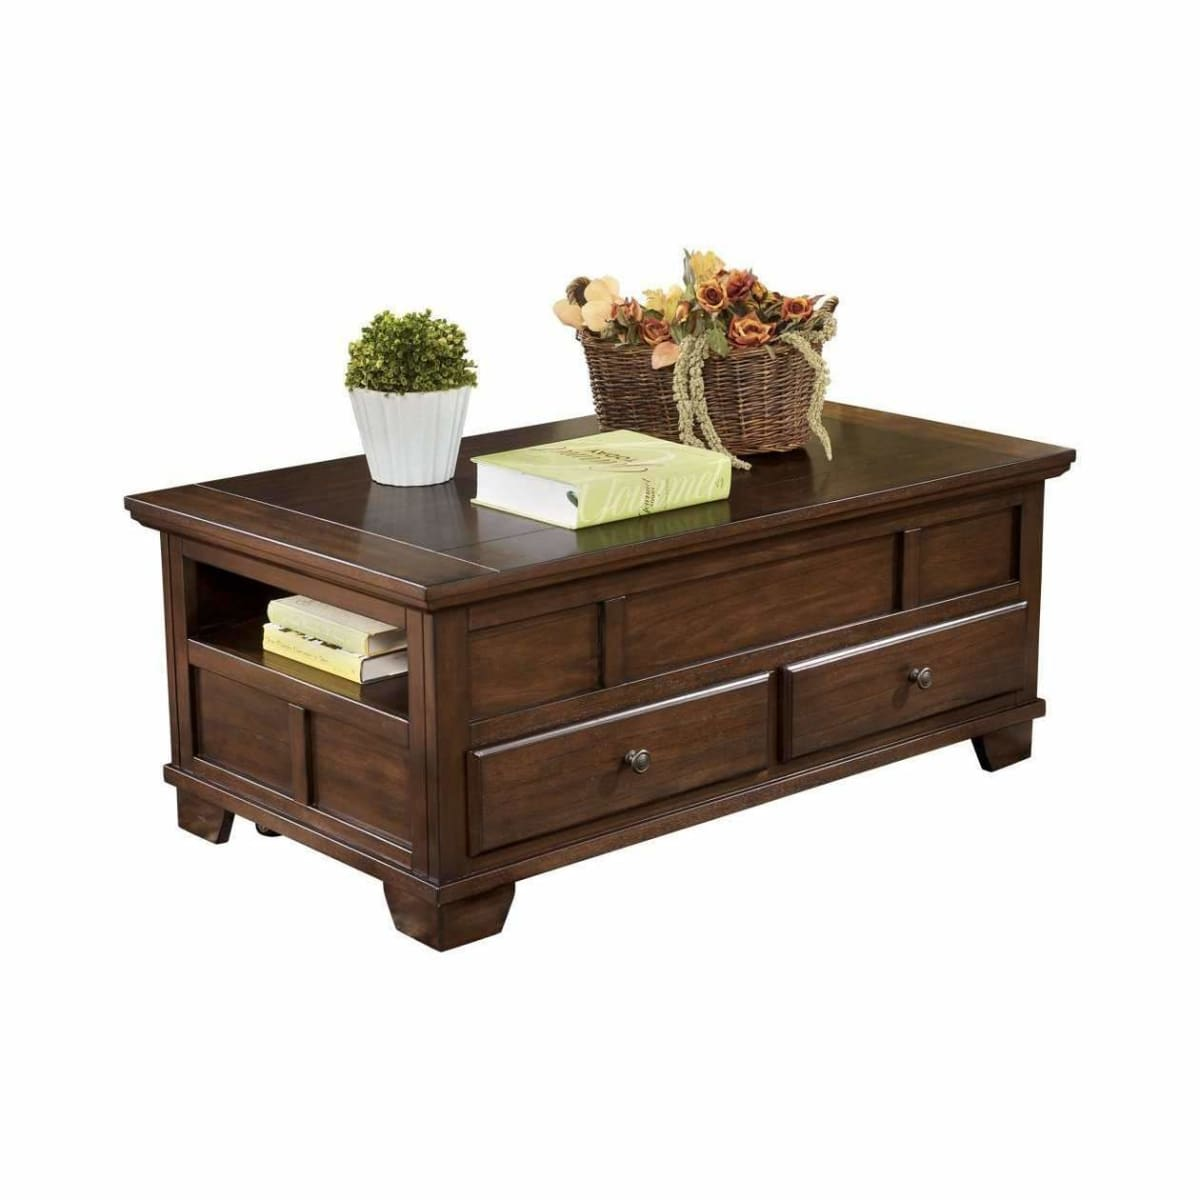 Gately Coffee Table with Lift Top - COFFEE TABLE